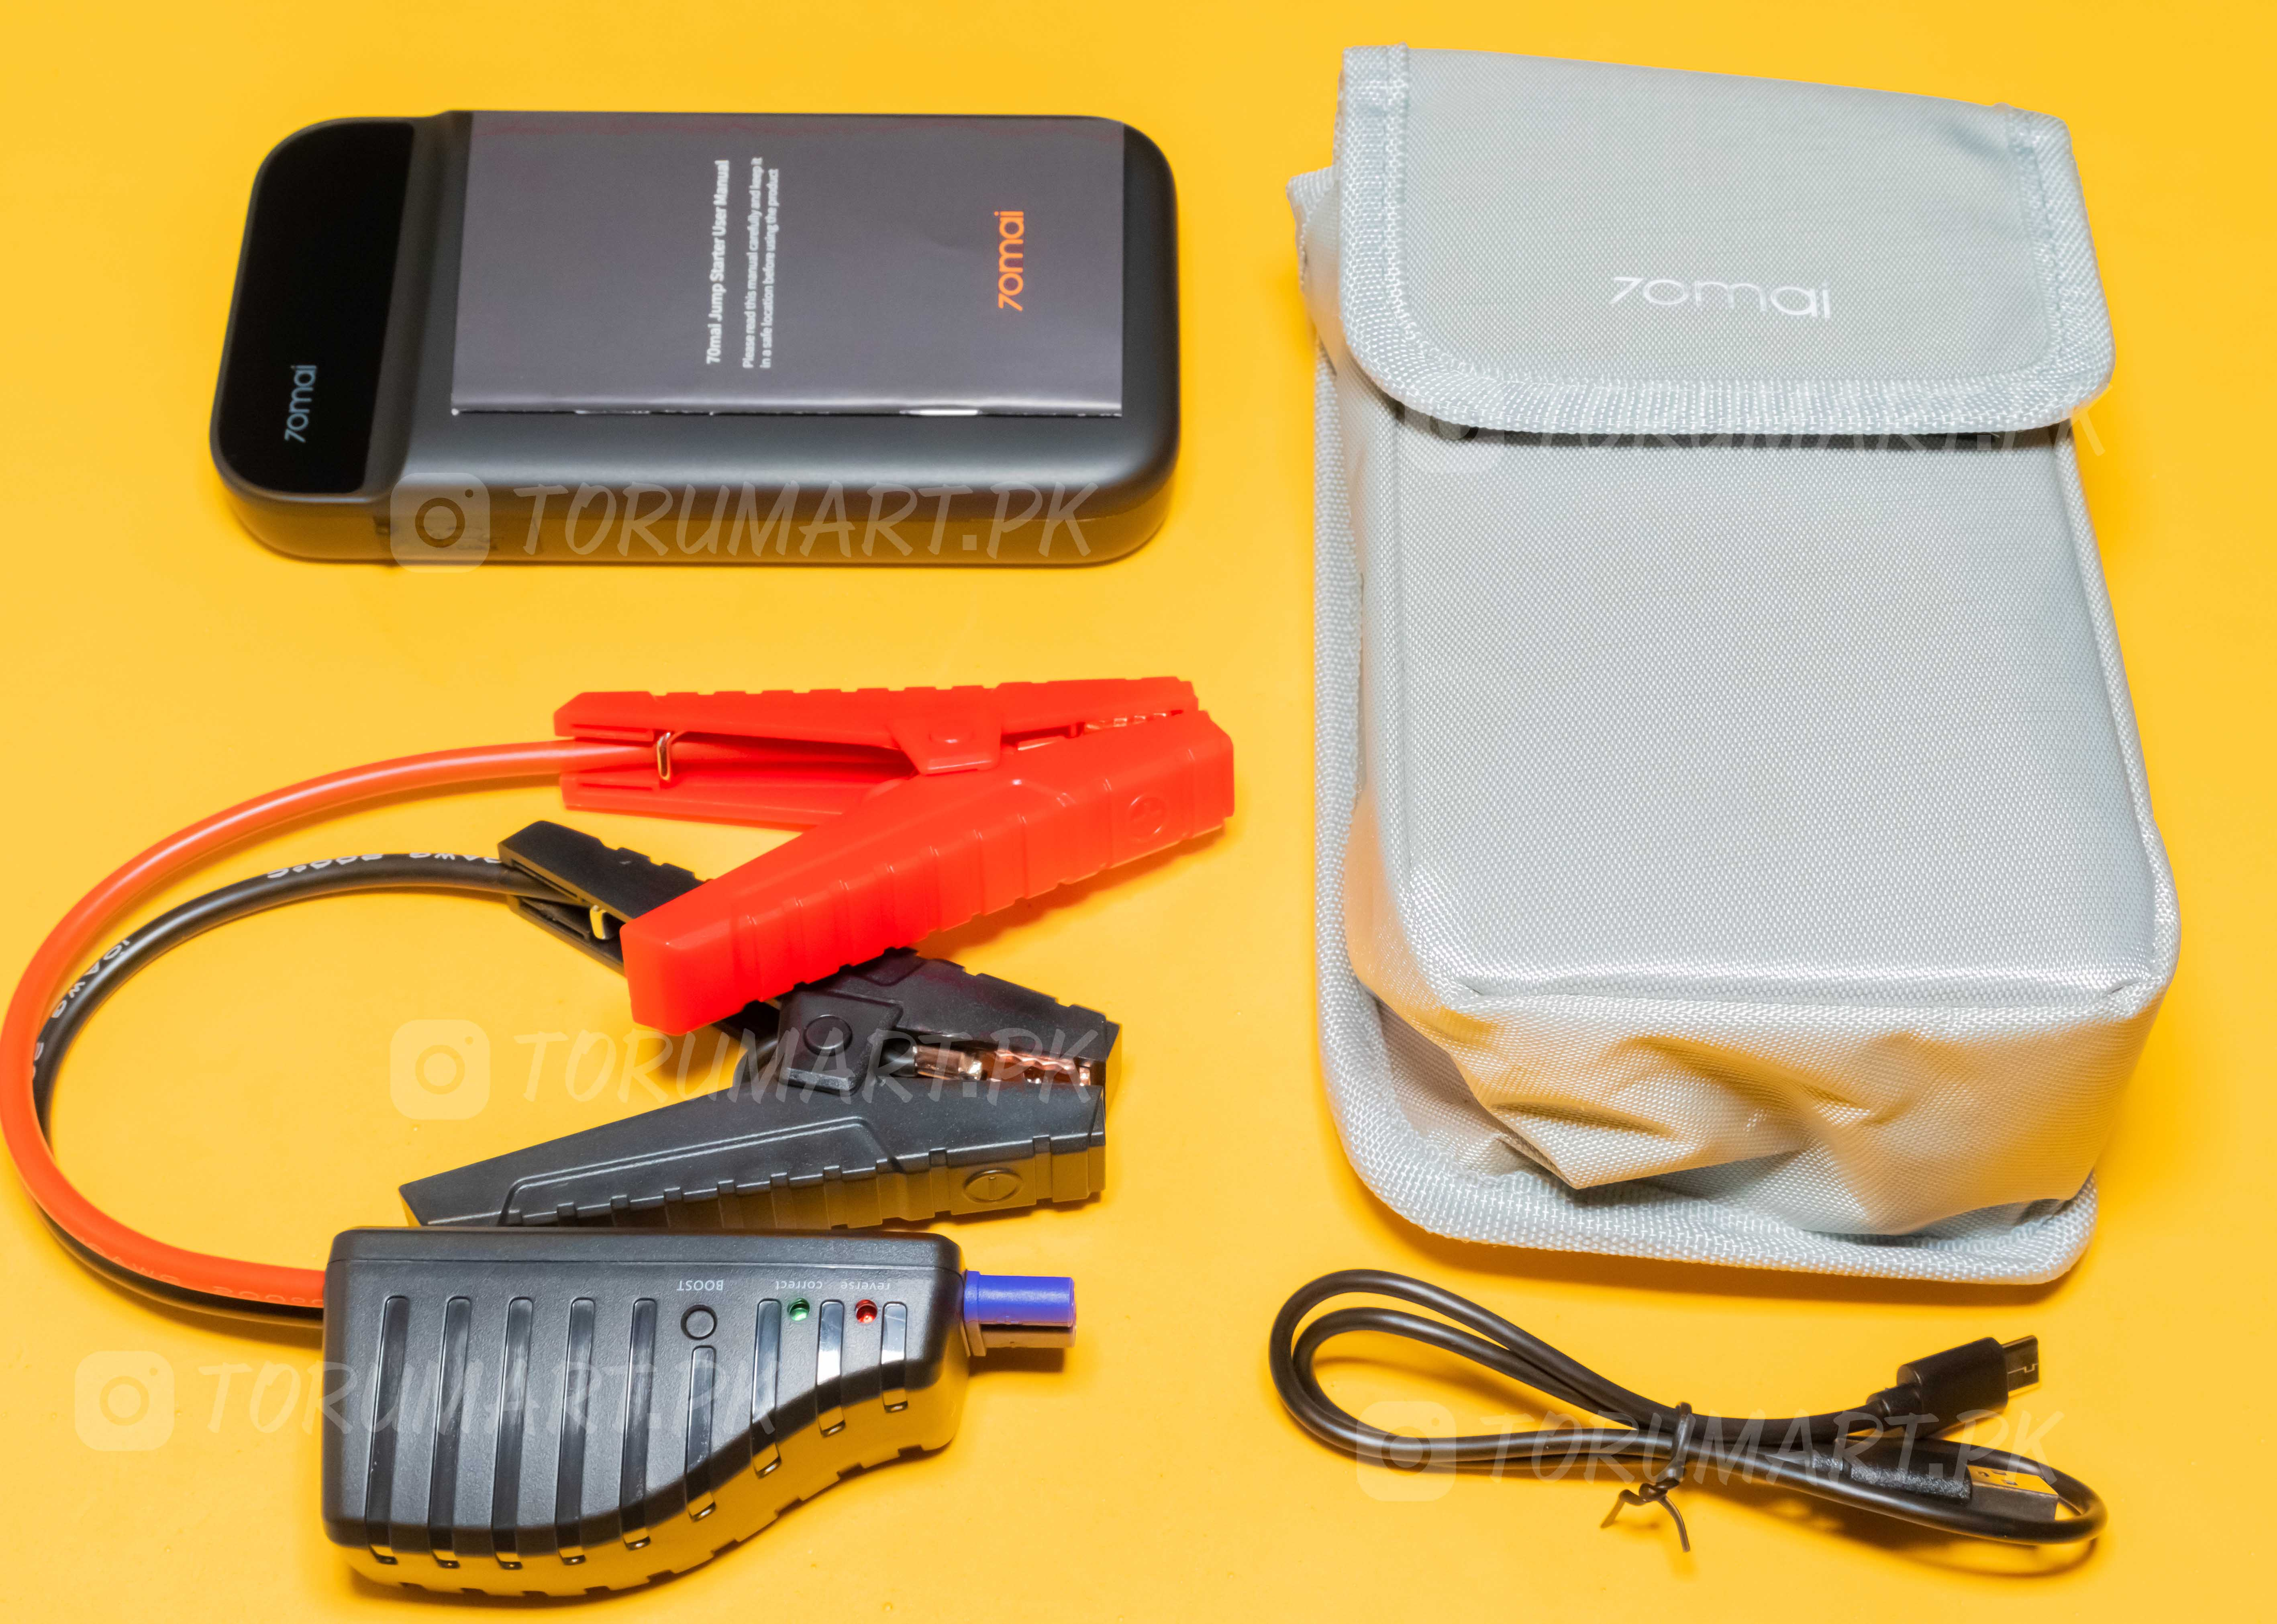 box contents 70mai car jump starter